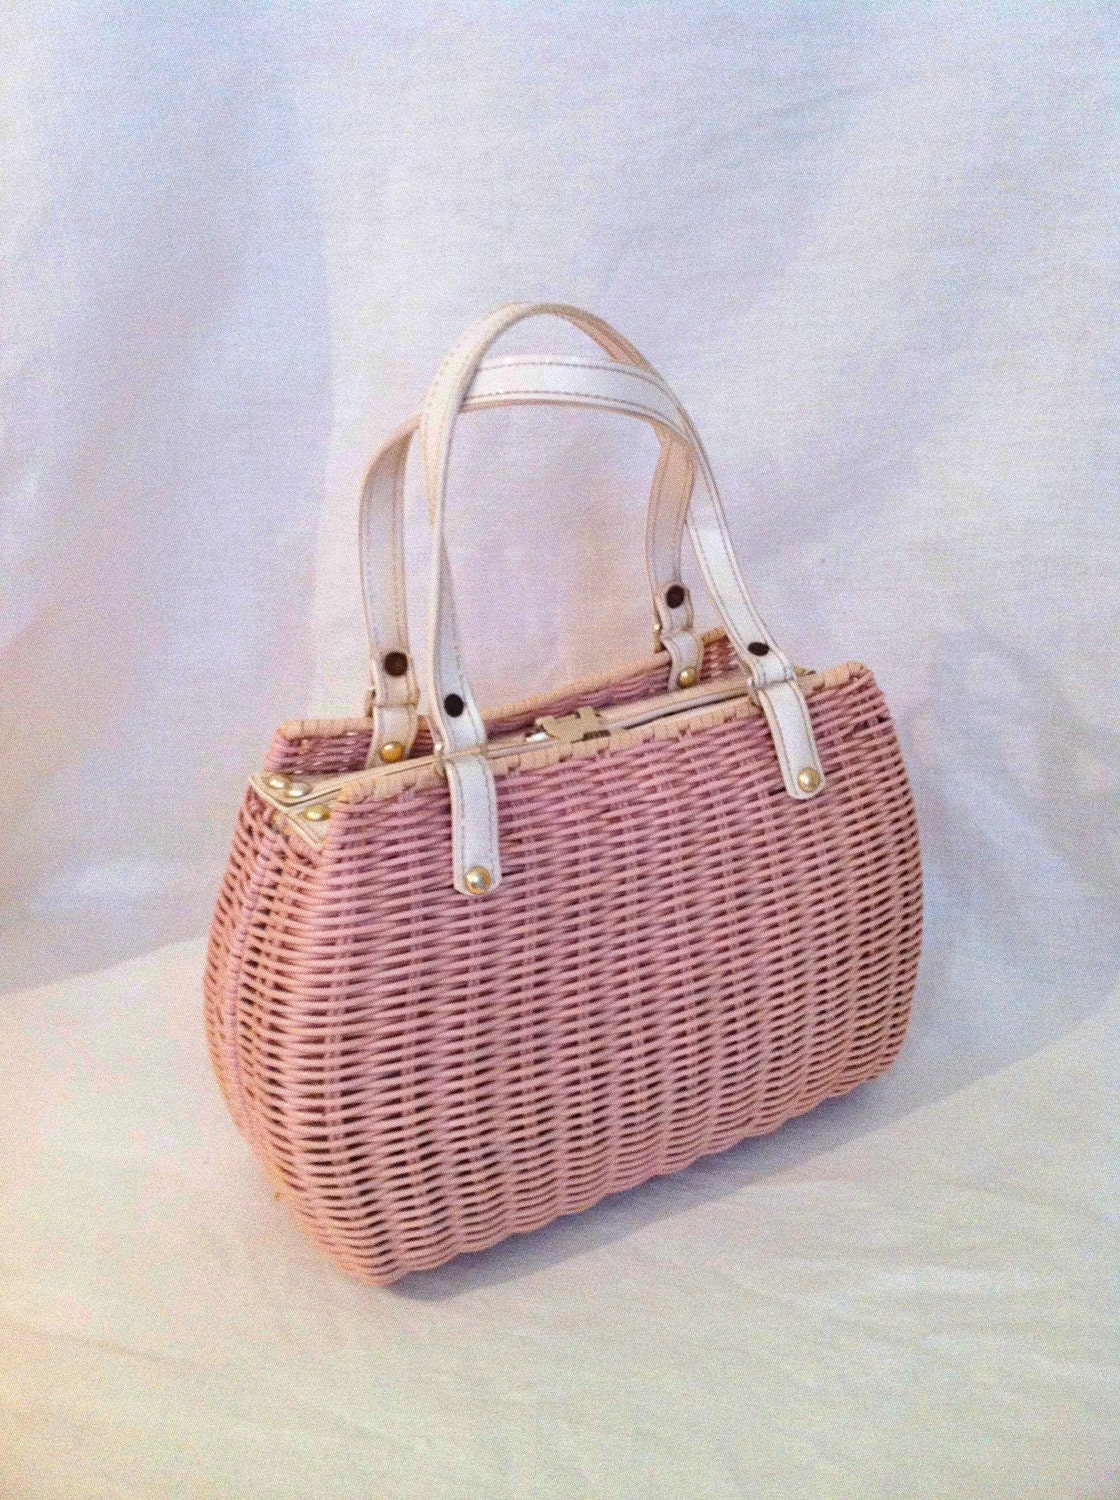 Vintage Purse Pink Wicker Vinyl White Straps Preppy 1960s